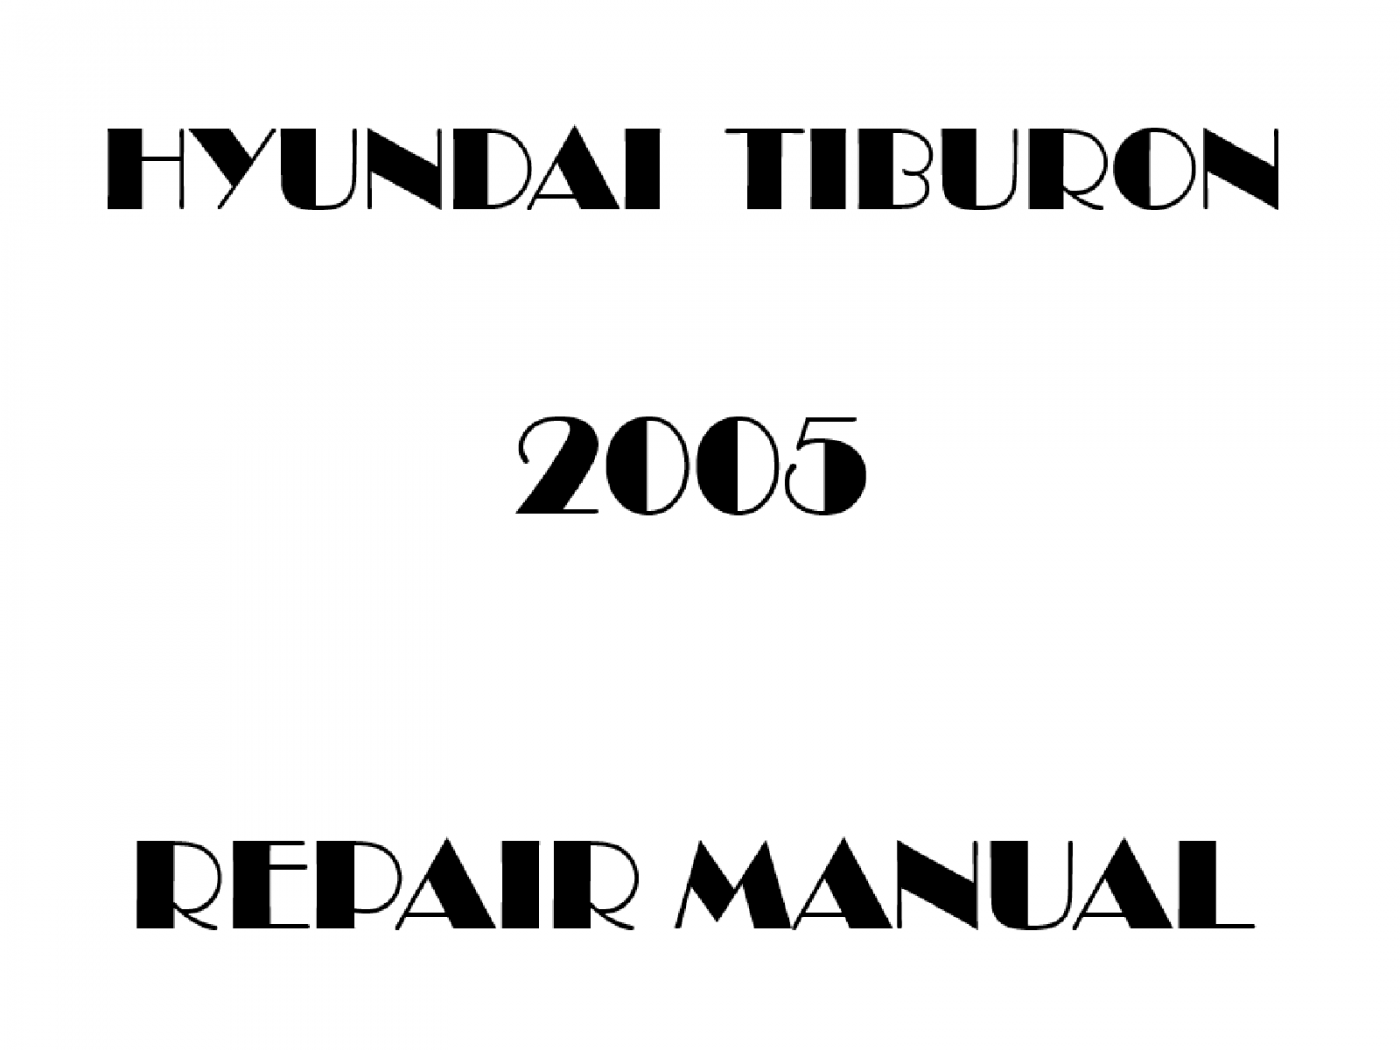 2005 Hyundai Tiburon repair manual